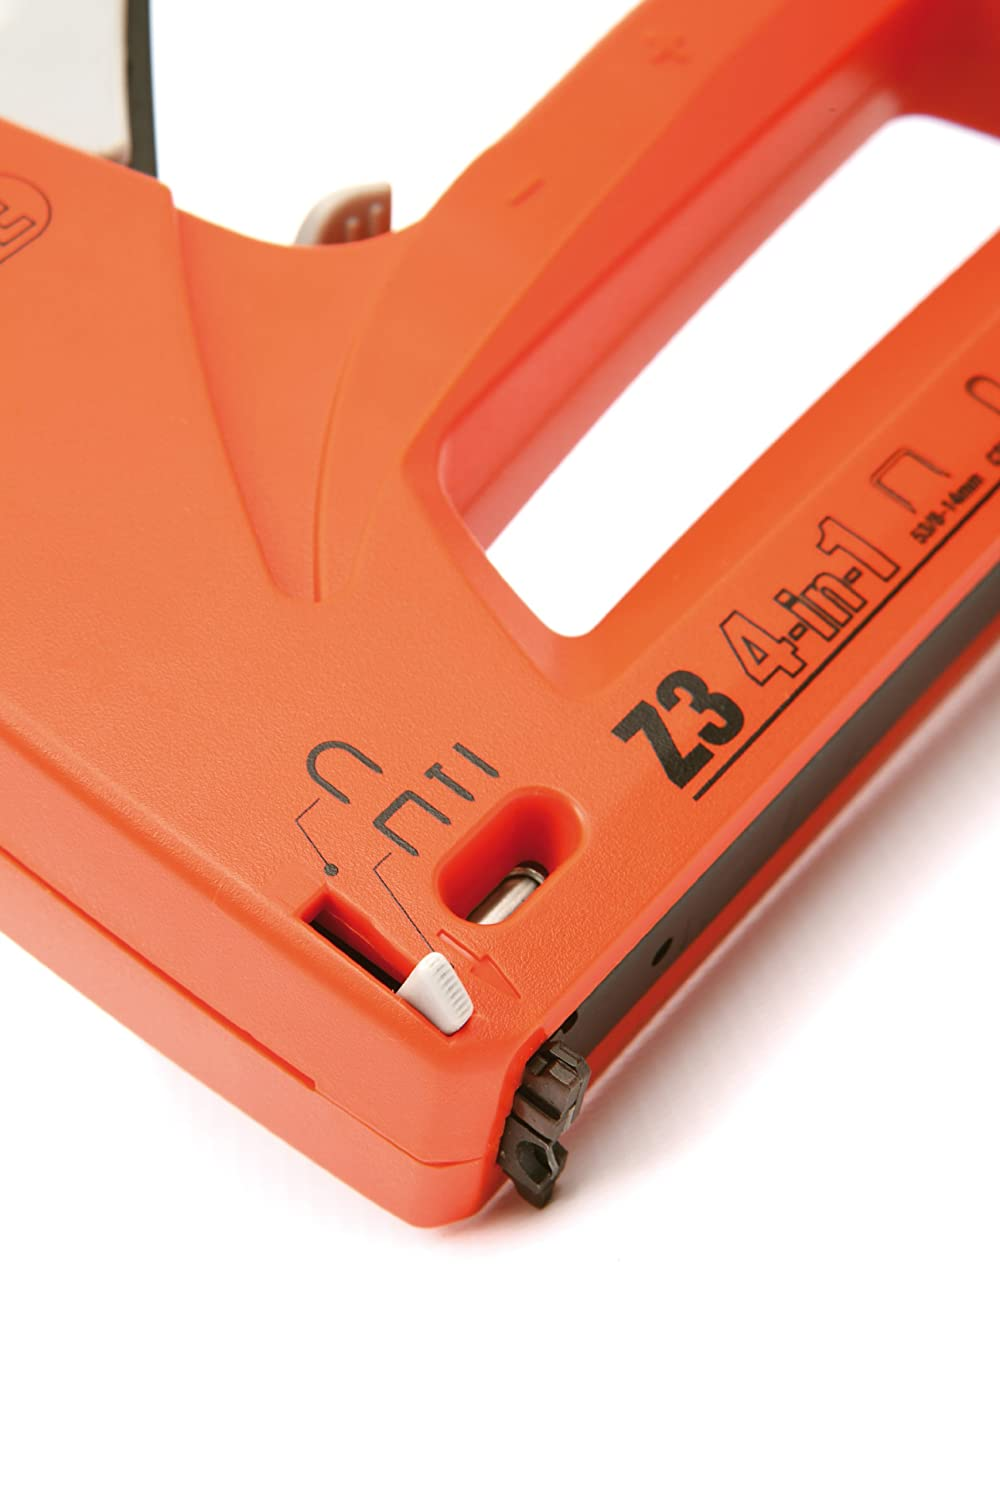 plastik Tacwise Tacwice 1022 Z3 4-in-1 Handnageltacker Orange